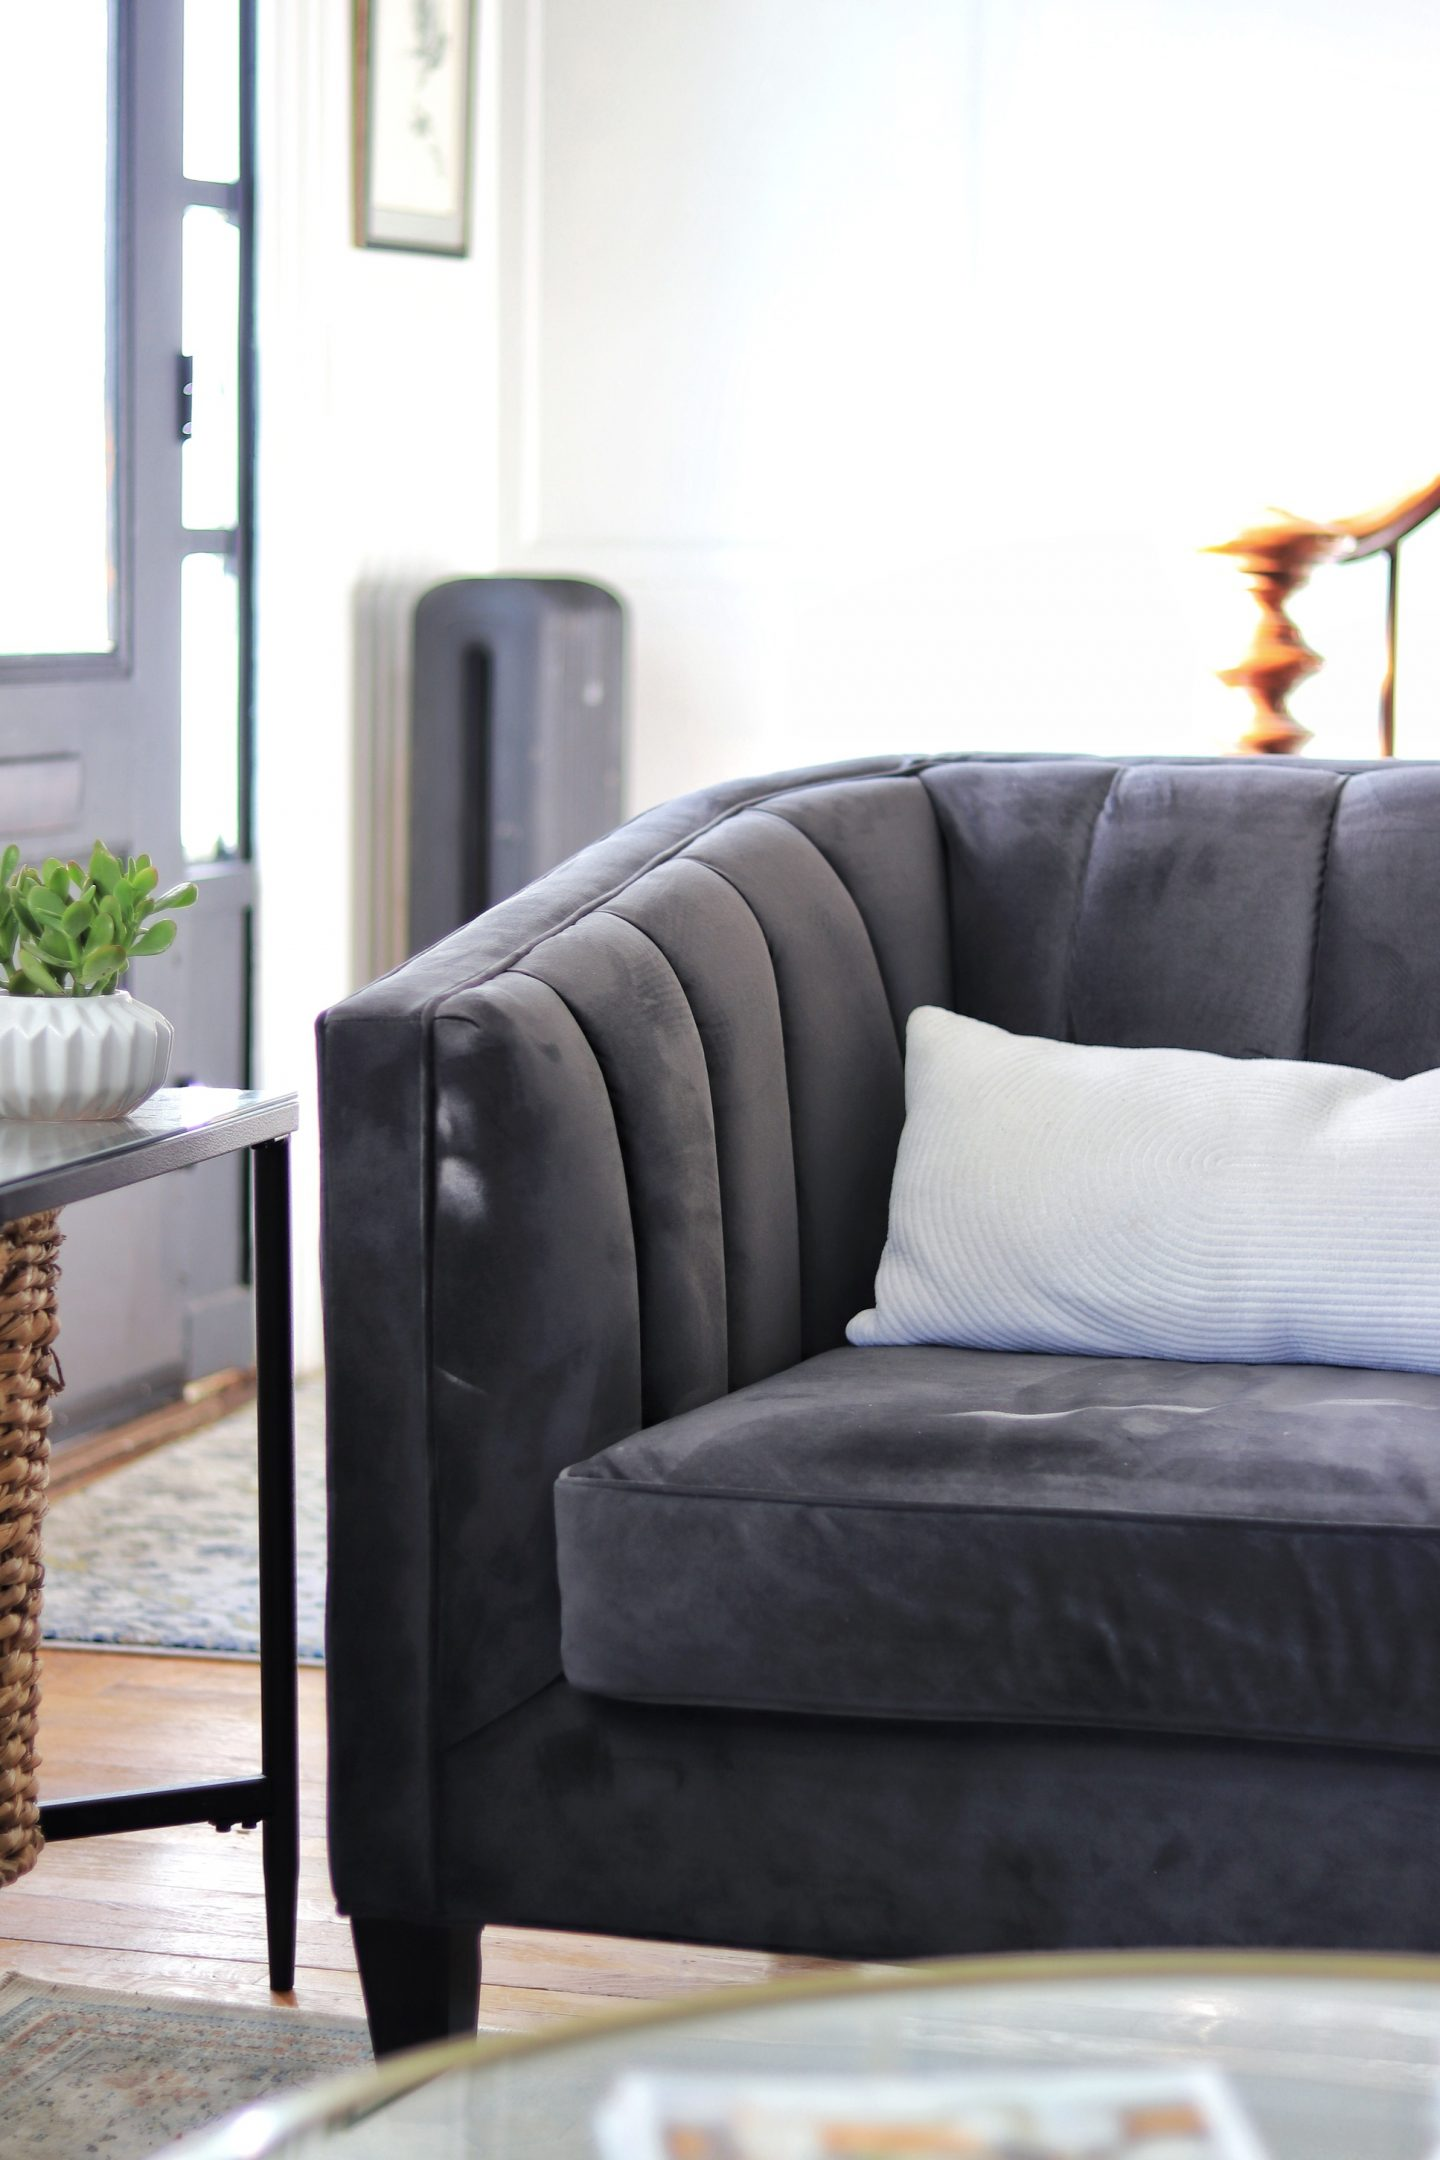 4 Modern and Stylish Sofas from Raymour & Flanigan and Living Room